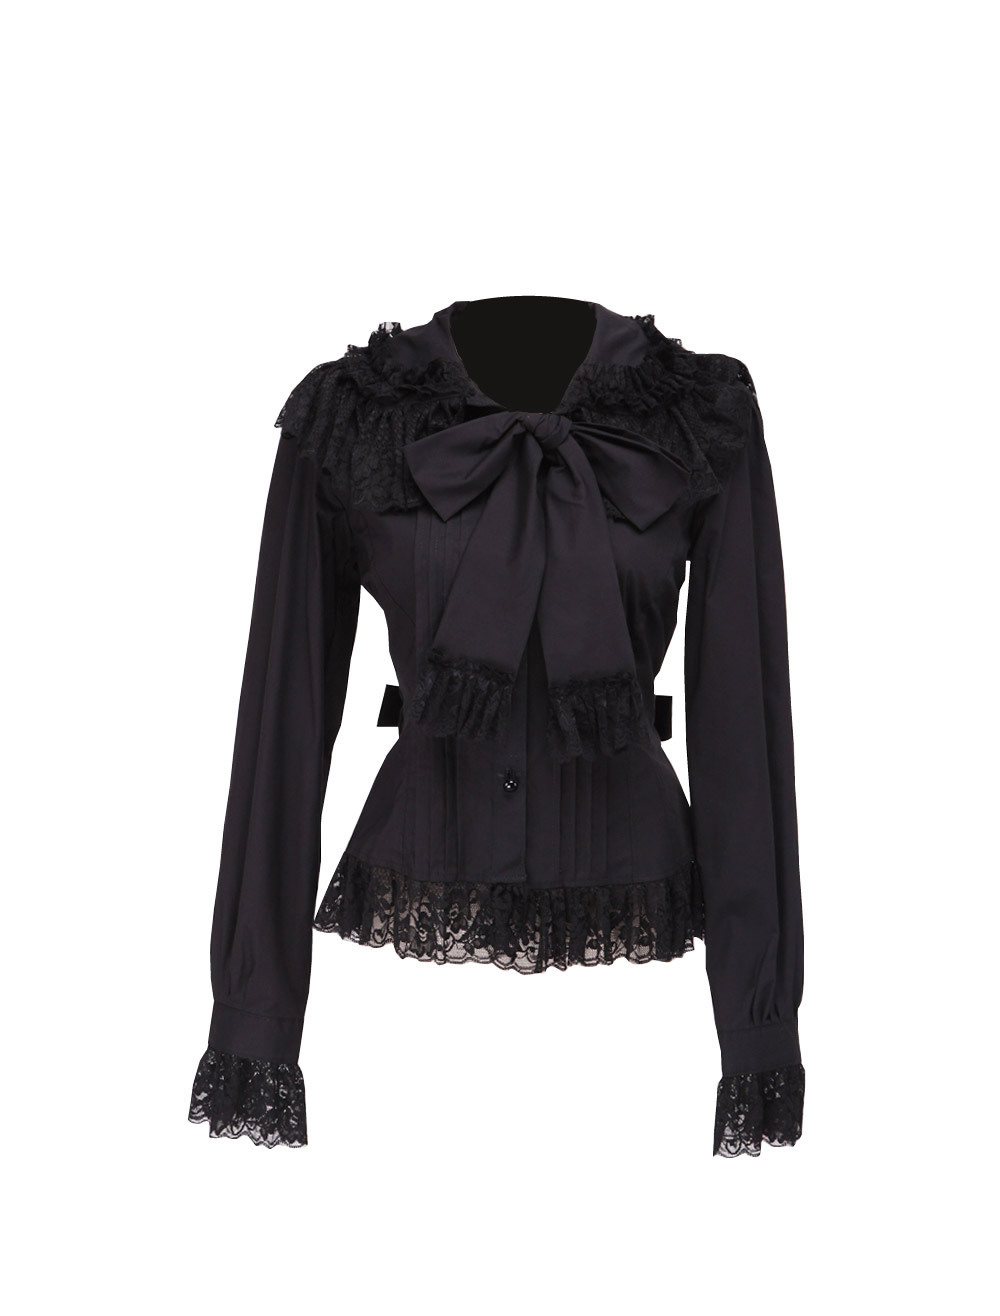 Primary image for Black Lace Ruffle Bow Retro Gothic Victorian Long Sleeve Cotton Lolita Blouse